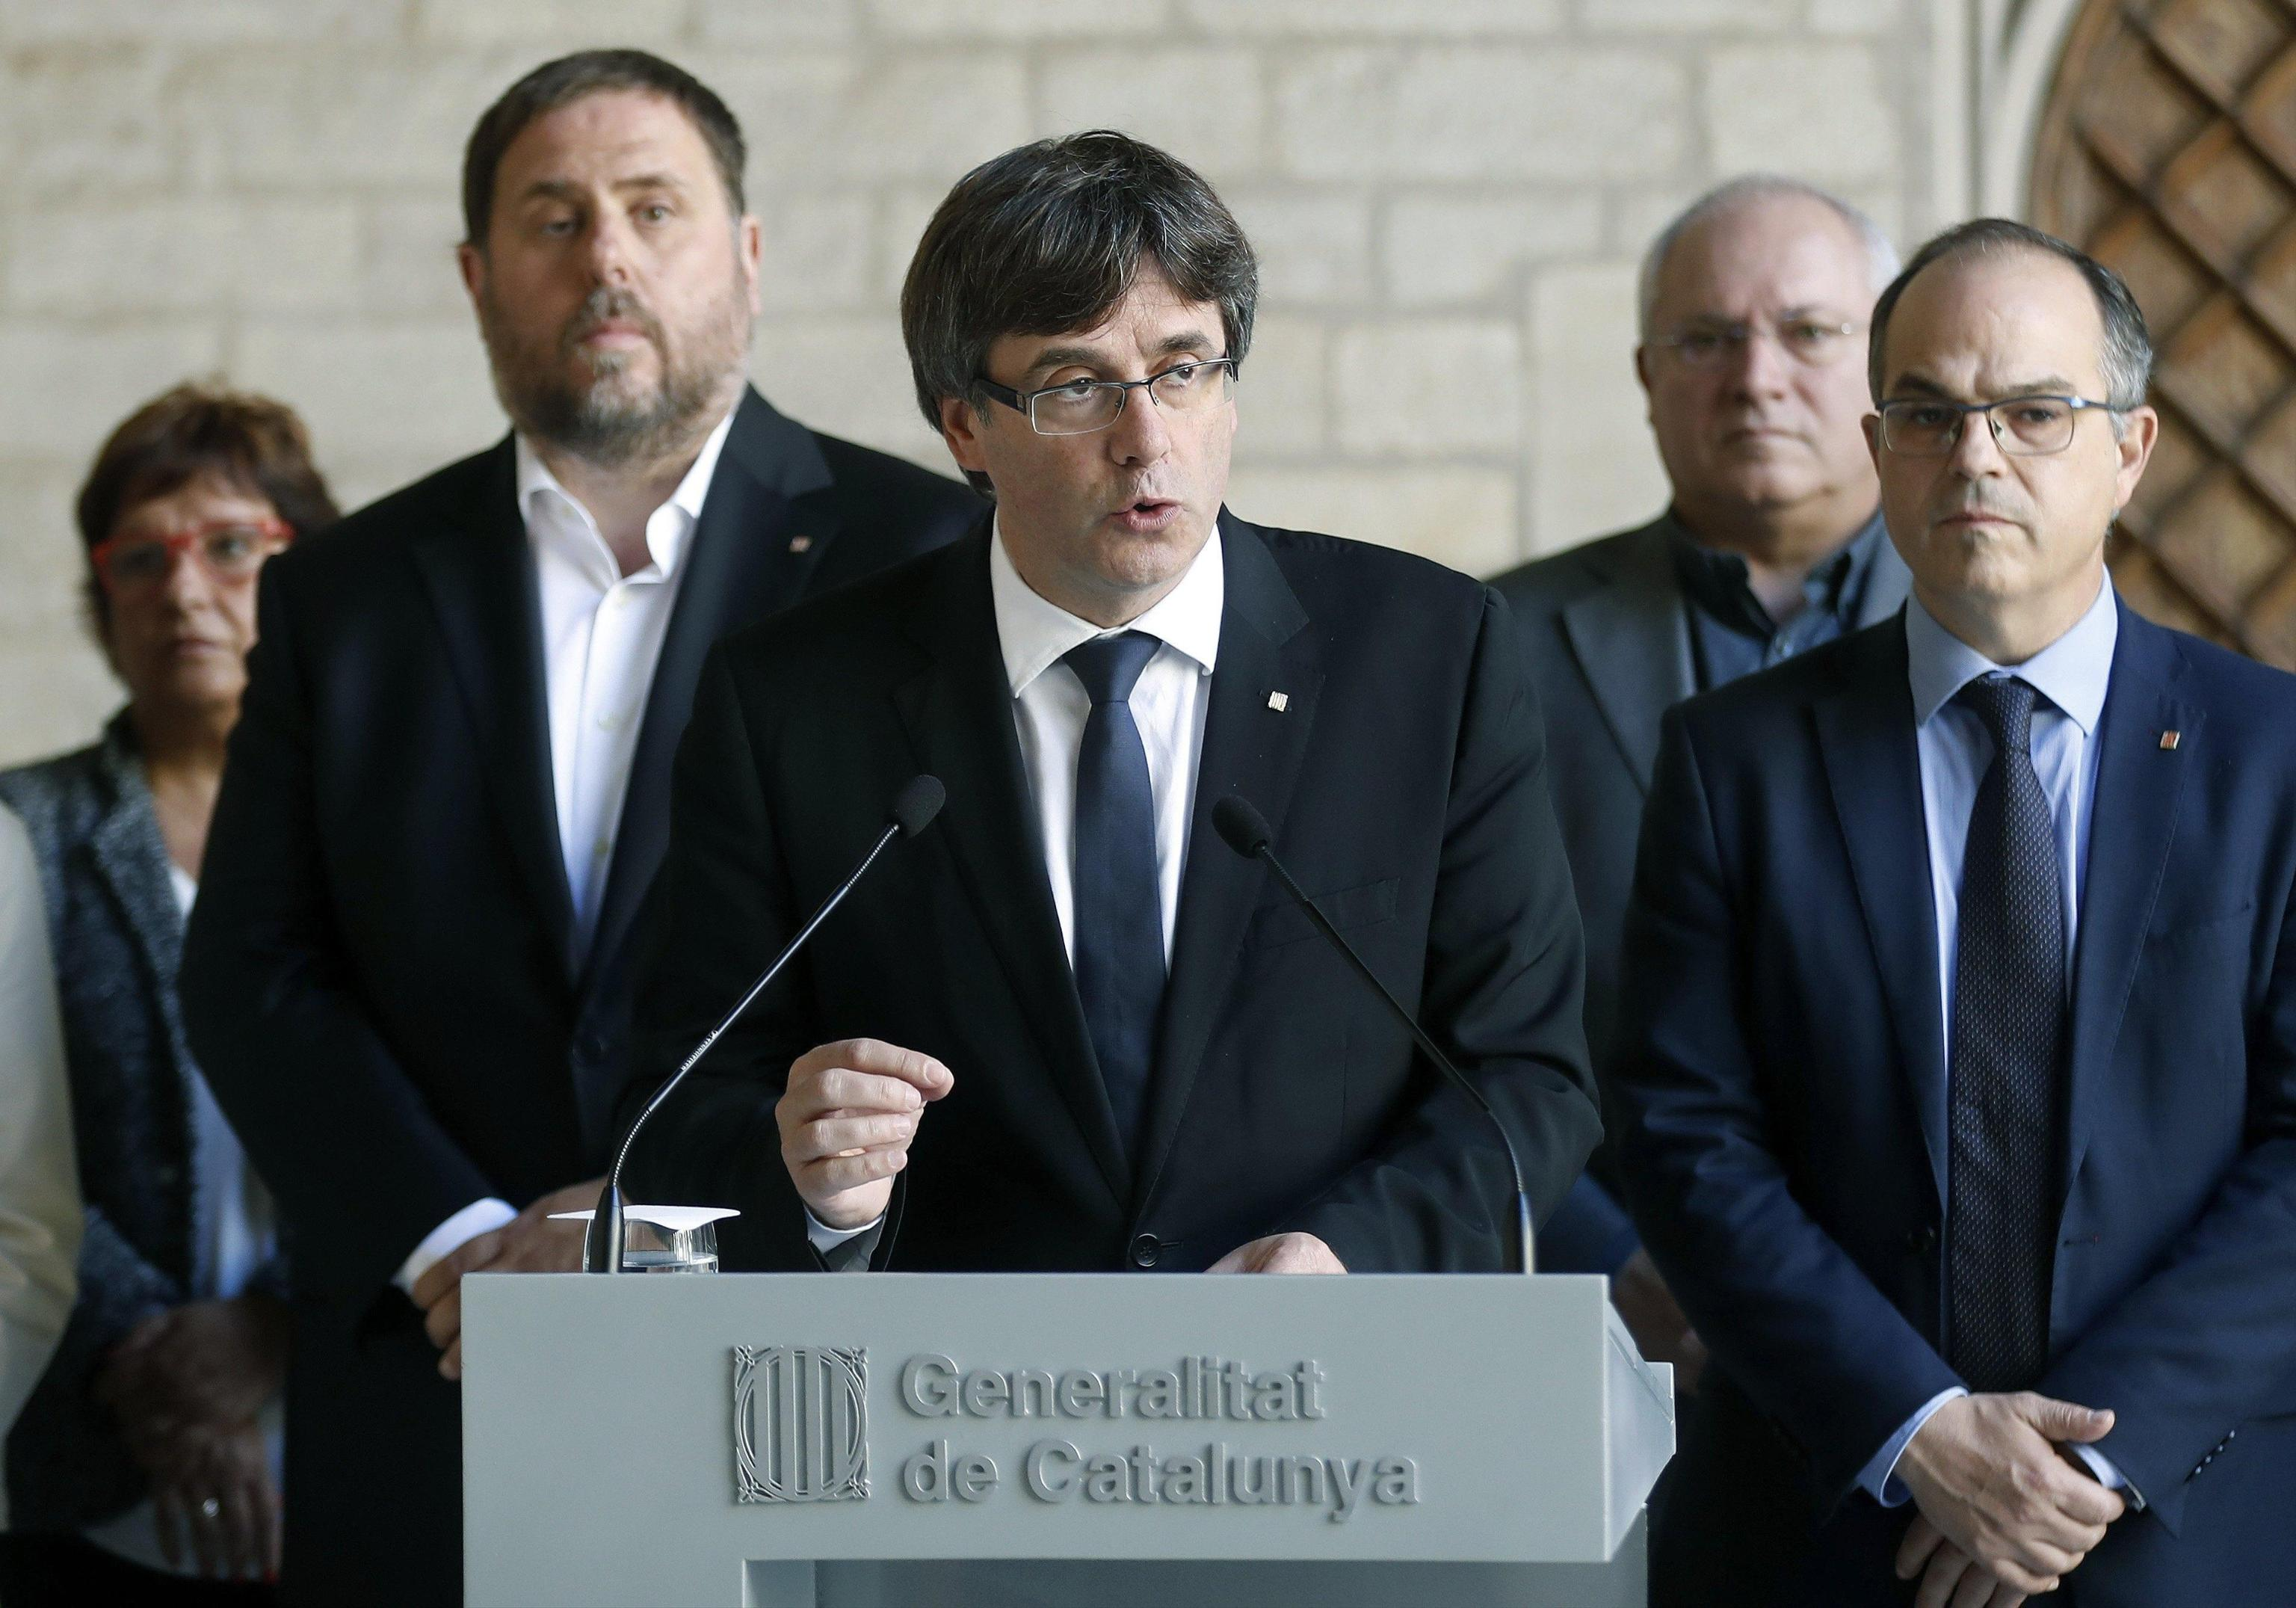 Catalan President Carles Puigdemont's press conference